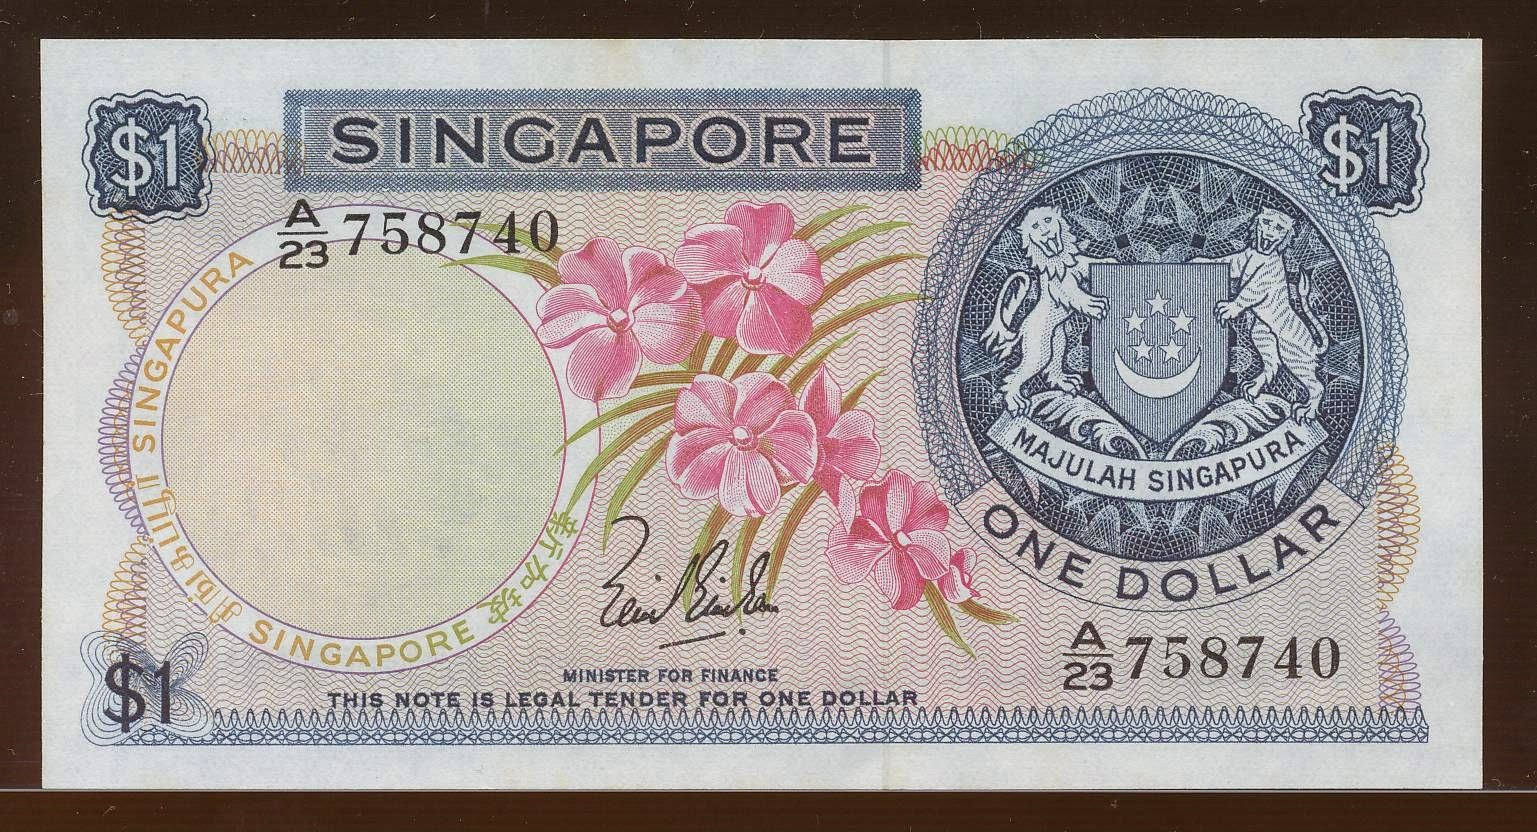 Singapore Dollar banknote Orchid series currency notes